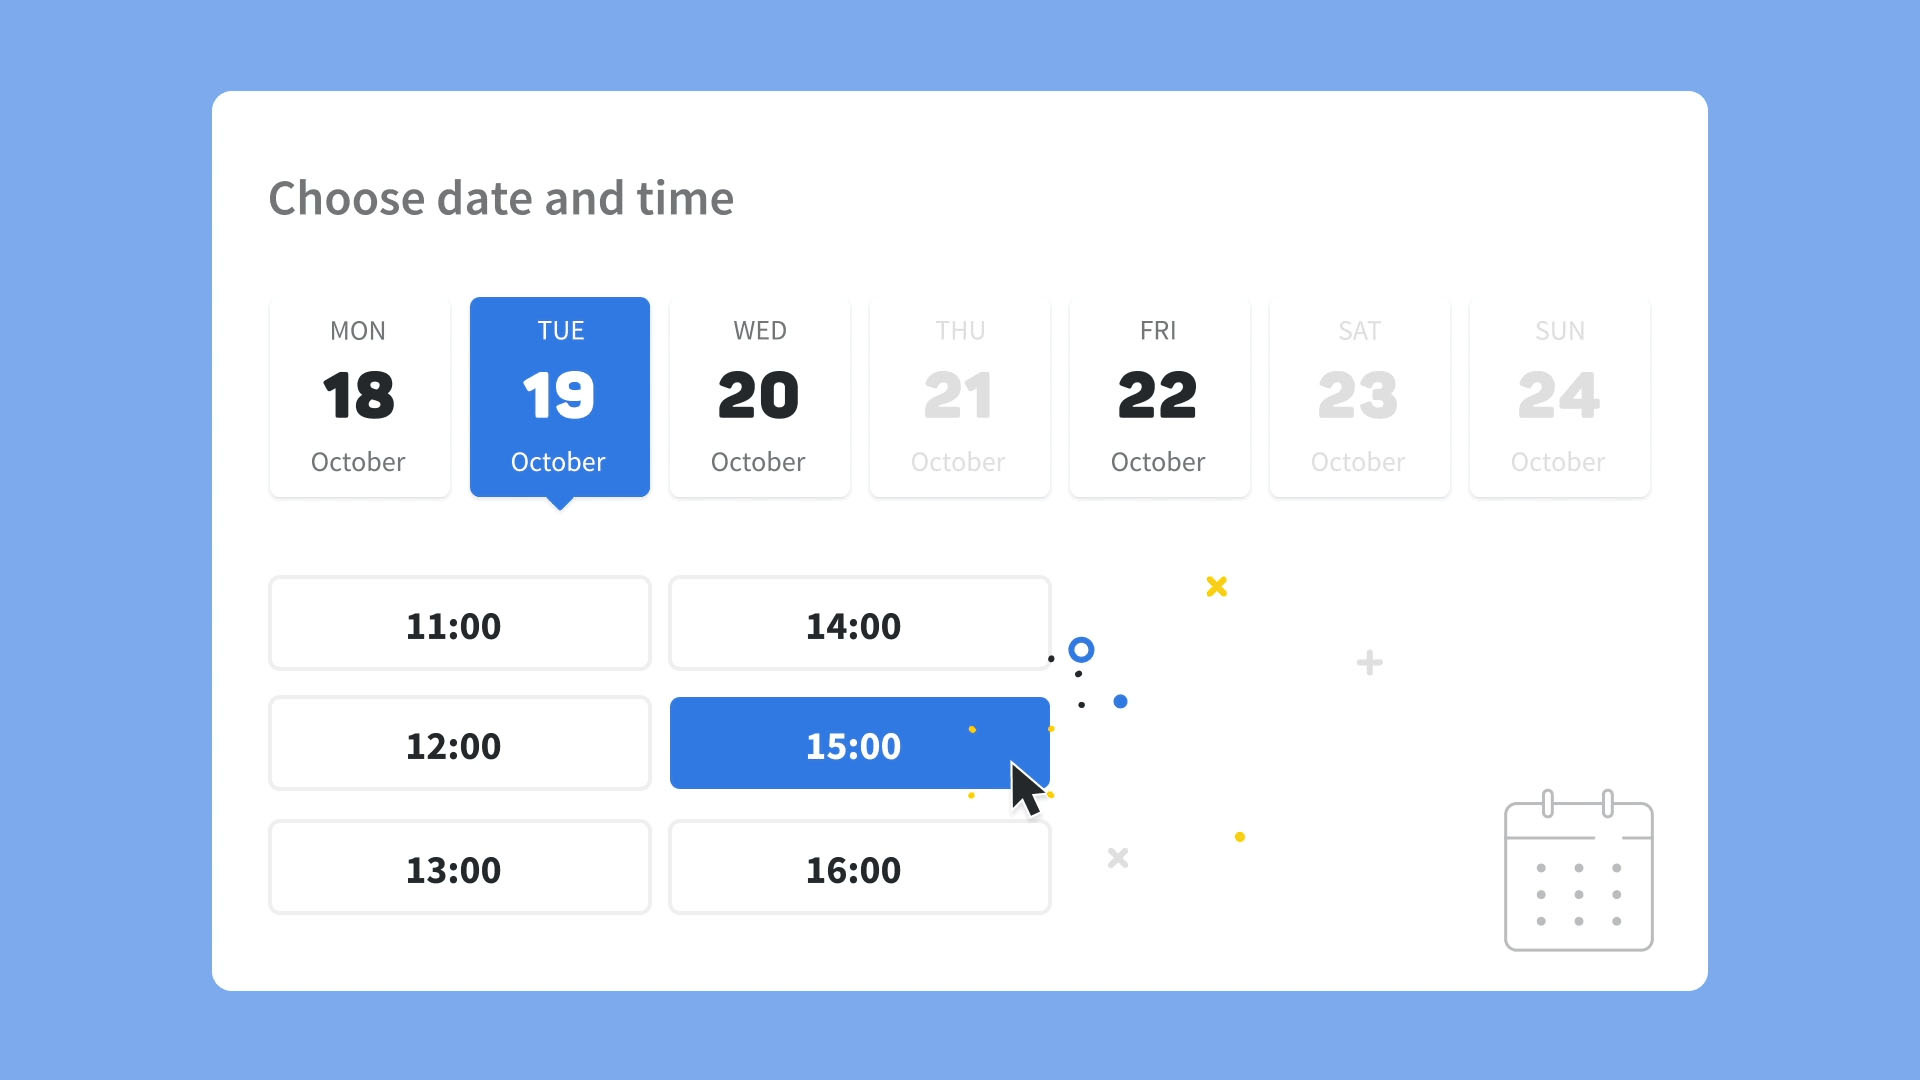 Pipedrive's Scheduling Tool Takes the Hassle out of Booking Meetings